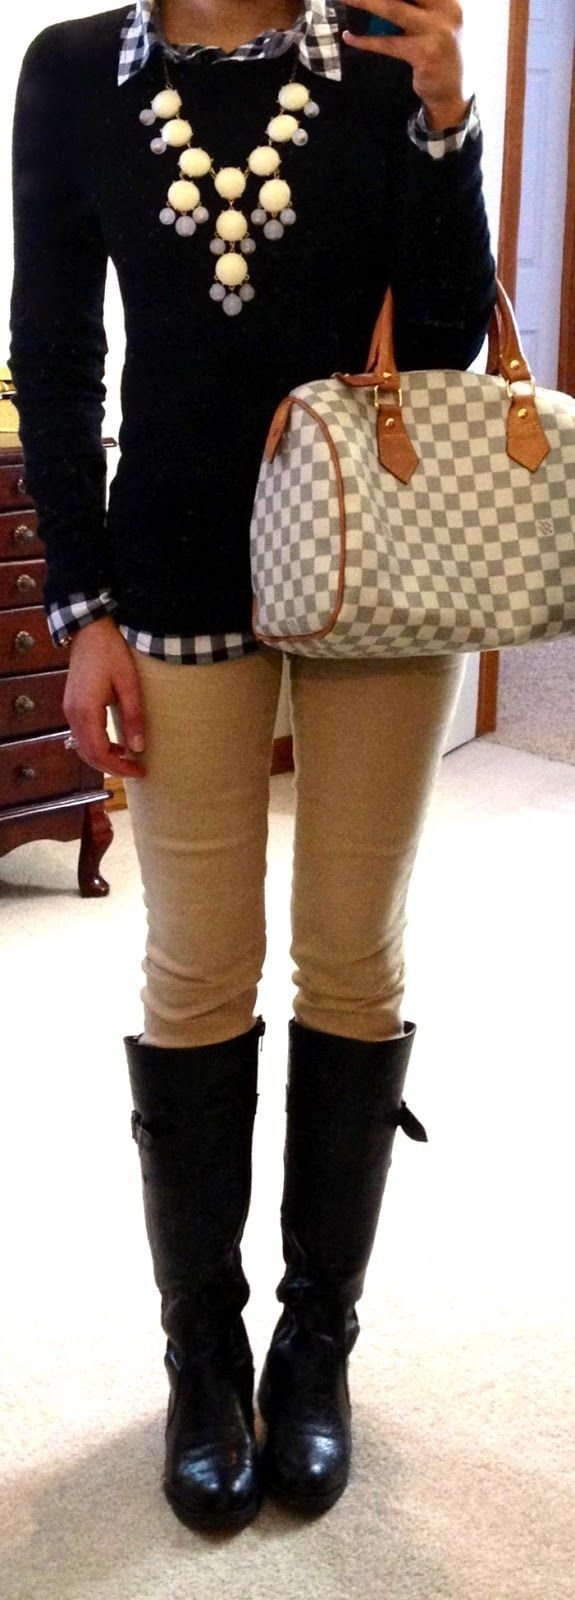 17 Best ideas about Khaki Pants Outfit on Pinterest | Army green pants Olive green pants and ...